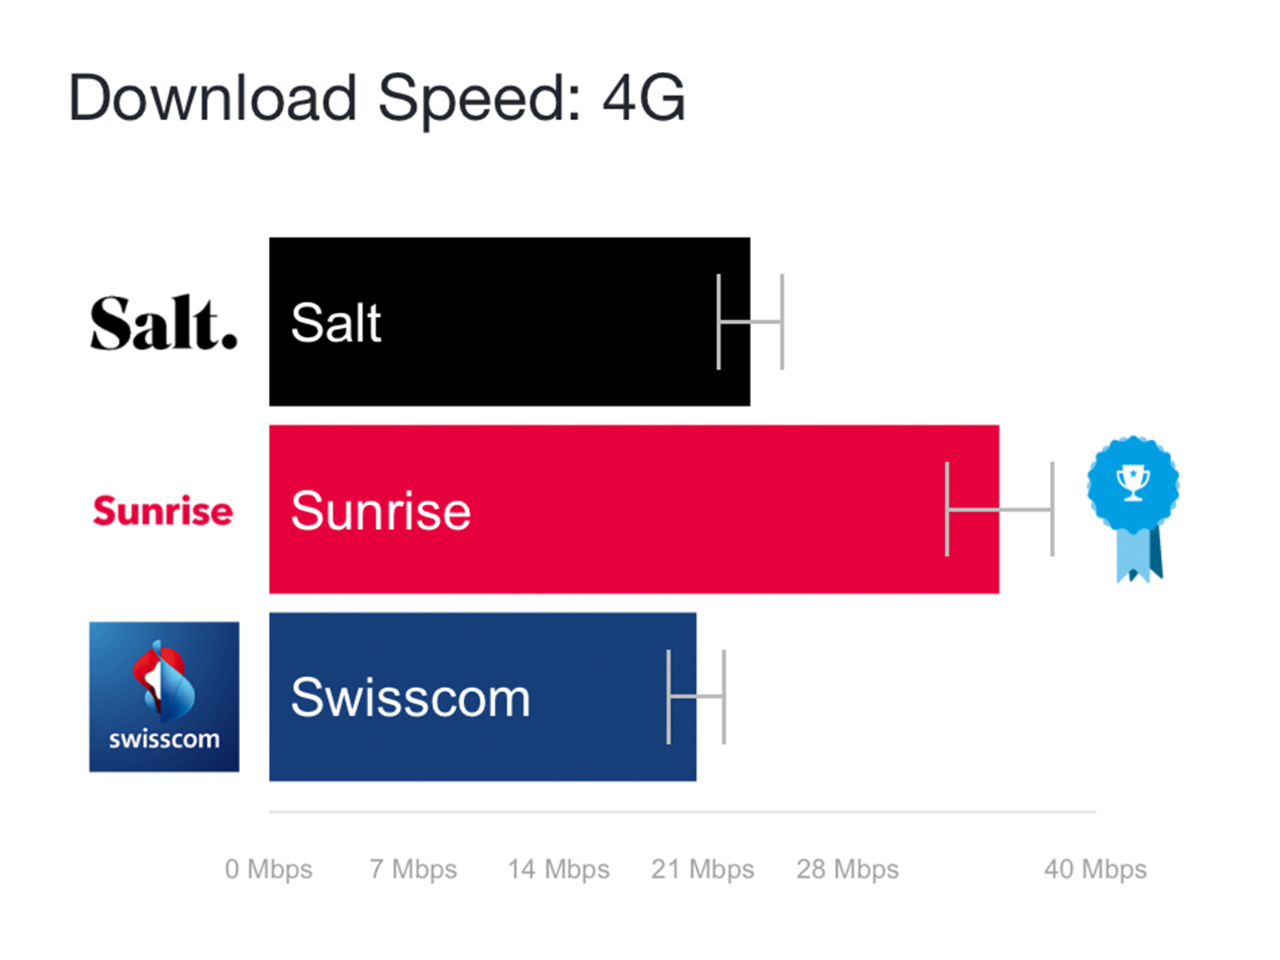 The fastest mobile Internet